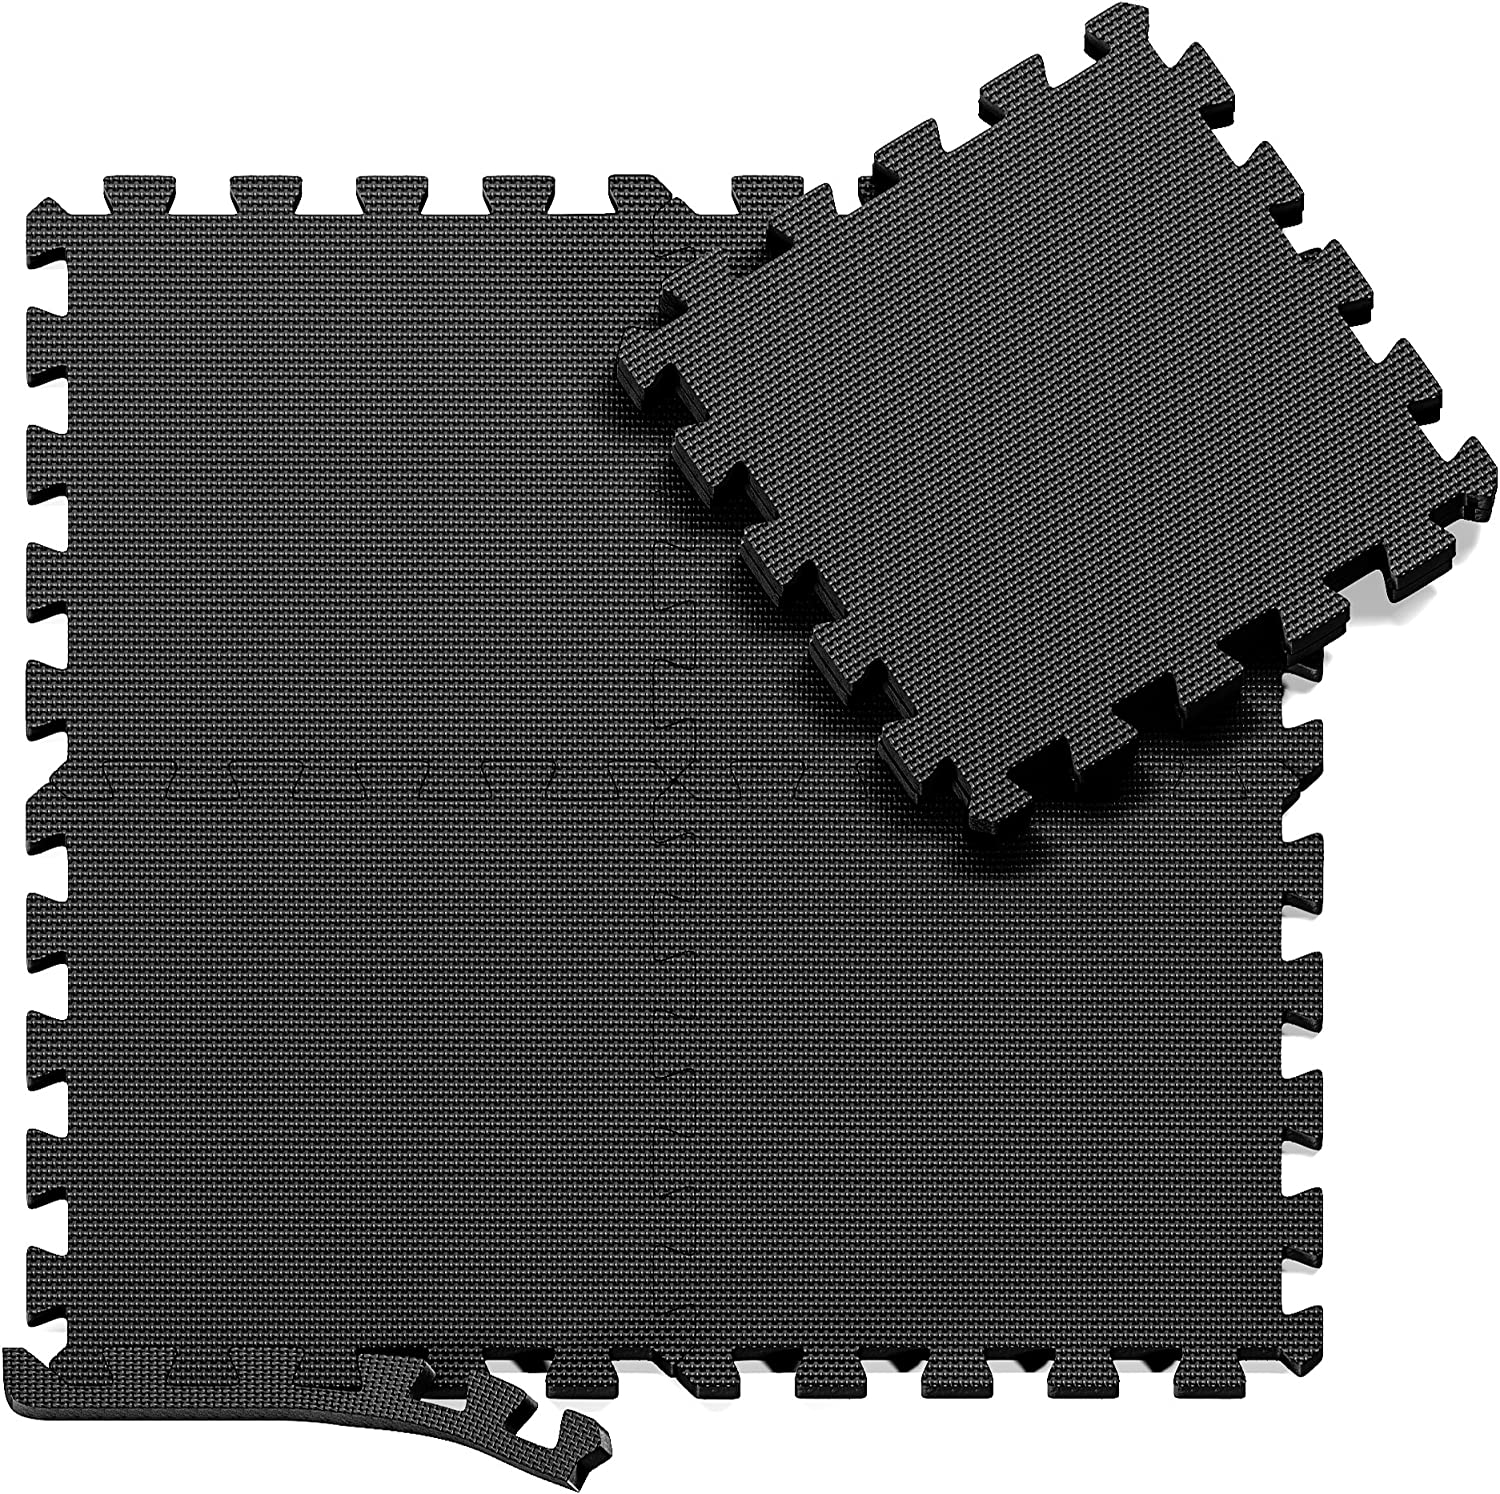 BeMaxx Interlocking Soft Foam Floor Mats